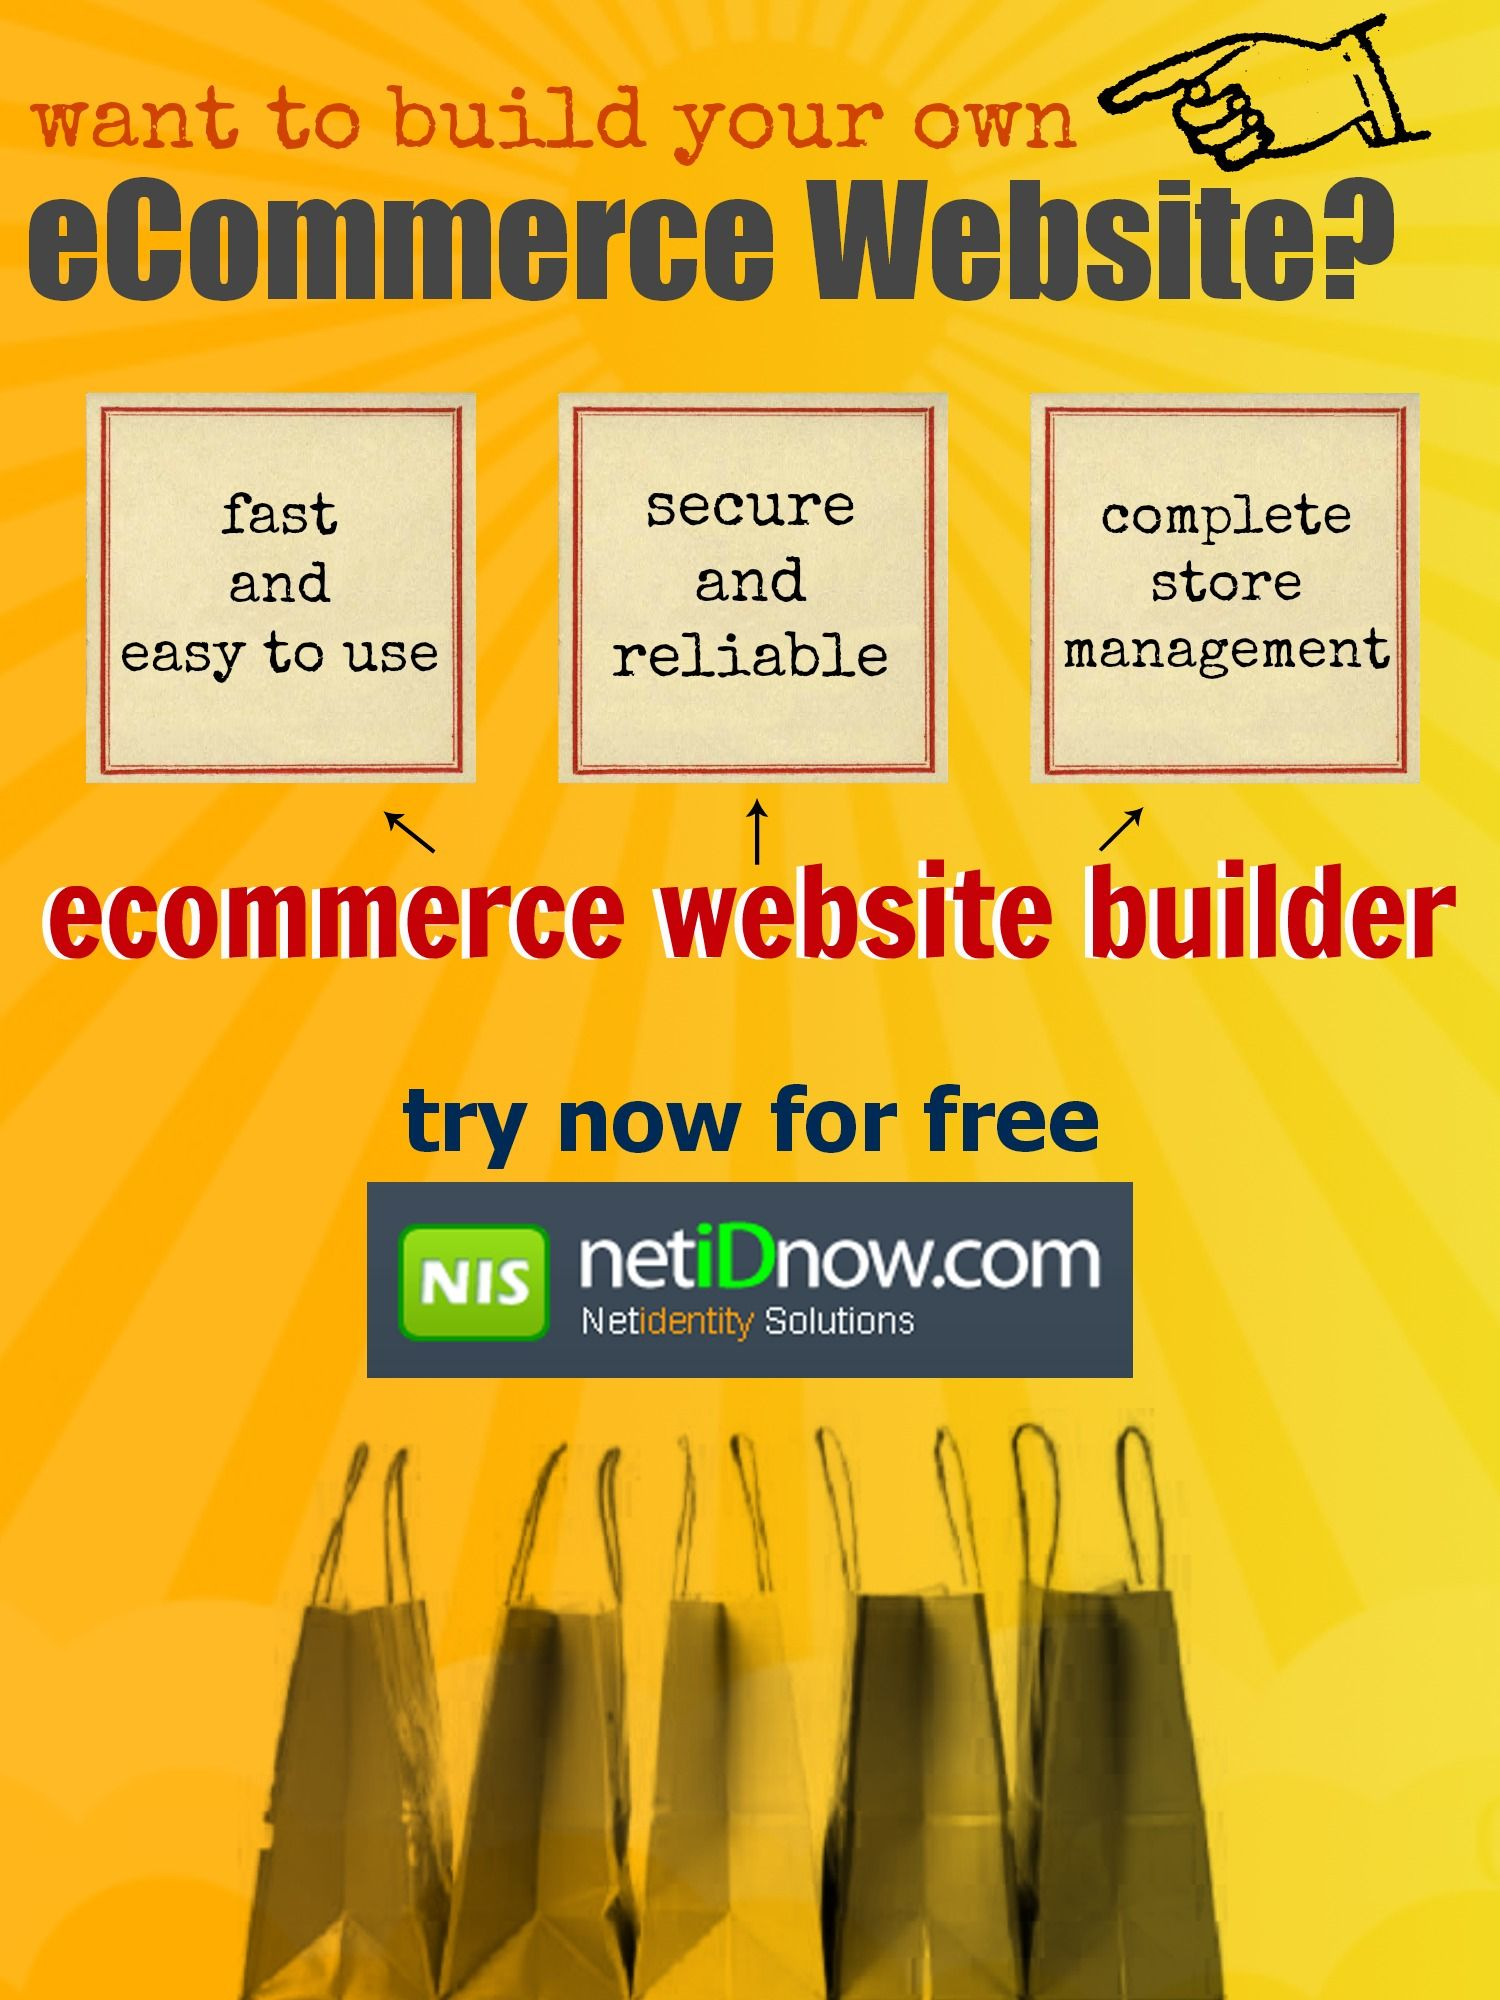 Learn how ecommerce website builder can fast track your ecommerce website setup.